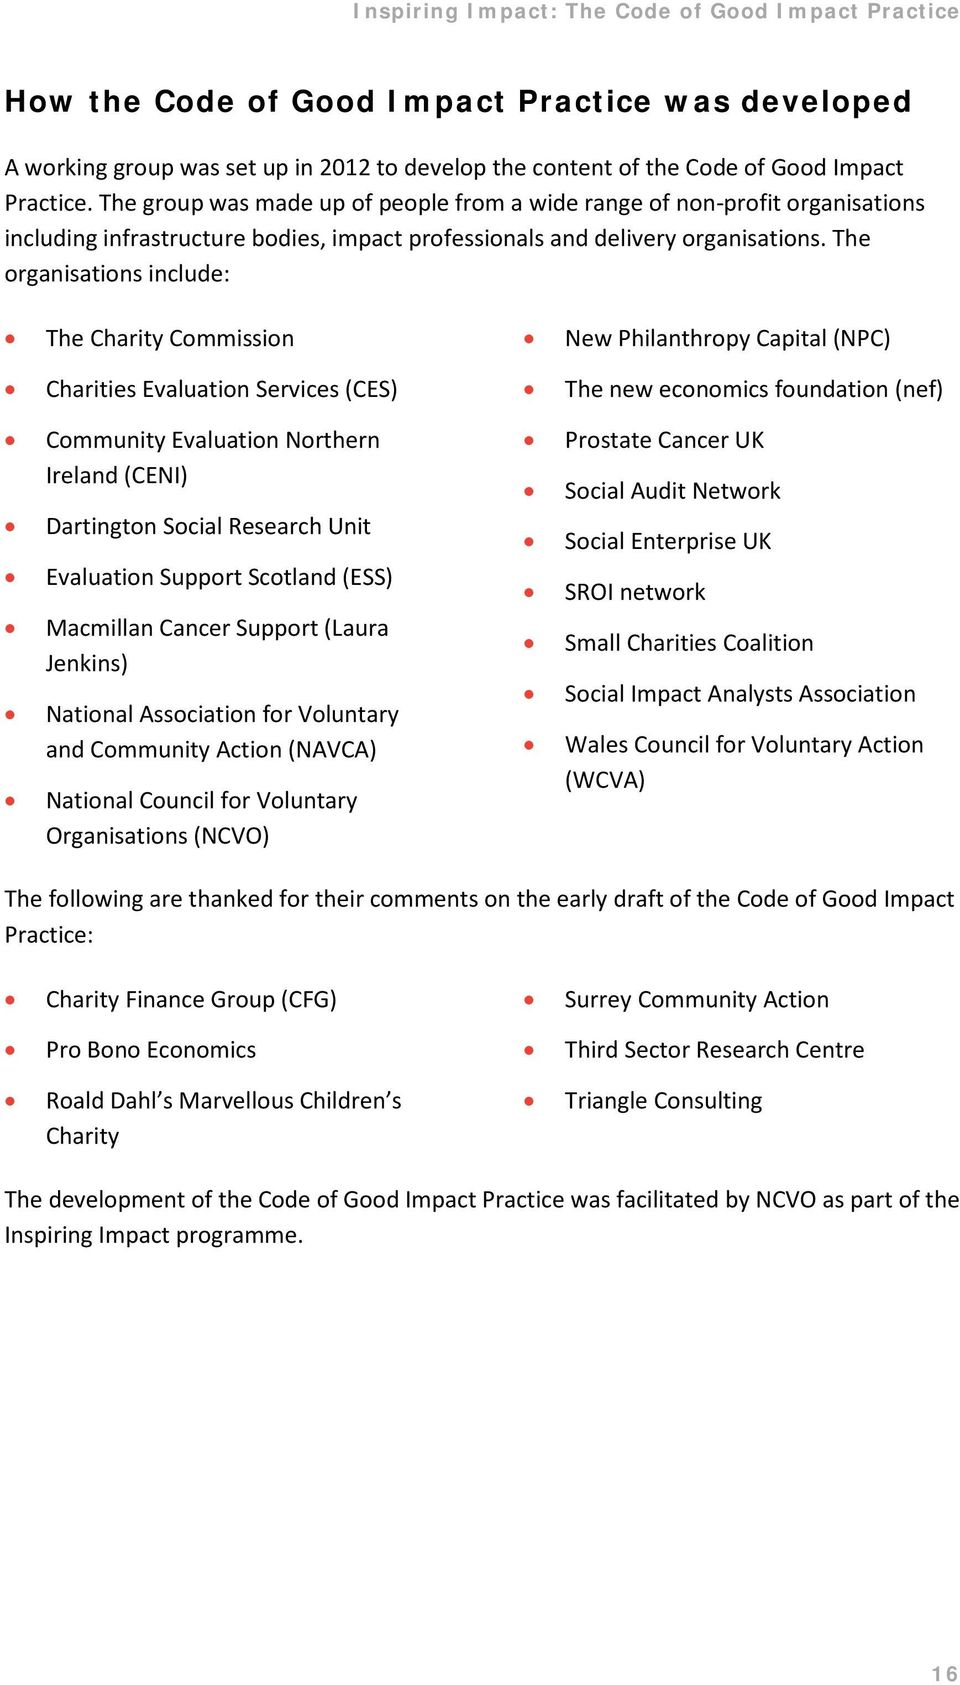 The organisations include: The Charity Commission Charities Evaluation Services (CES) Community Evaluation Northern Ireland (CENI) Dartington Social Research Unit Evaluation Support Scotland (ESS)